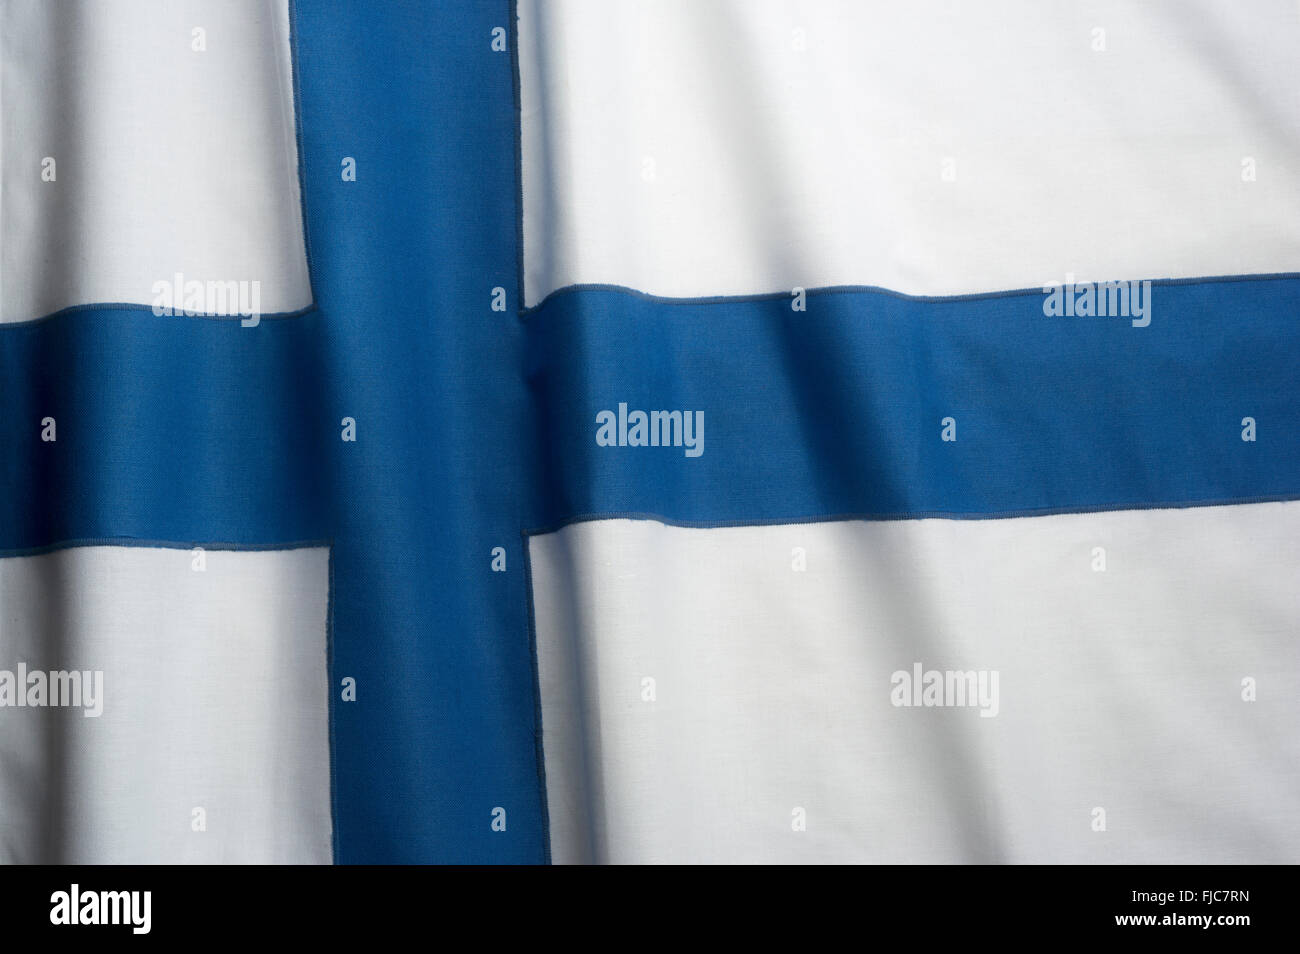 FINNISH FLAG MADE OF STITCHED COTTON BUNTING Stock Photo